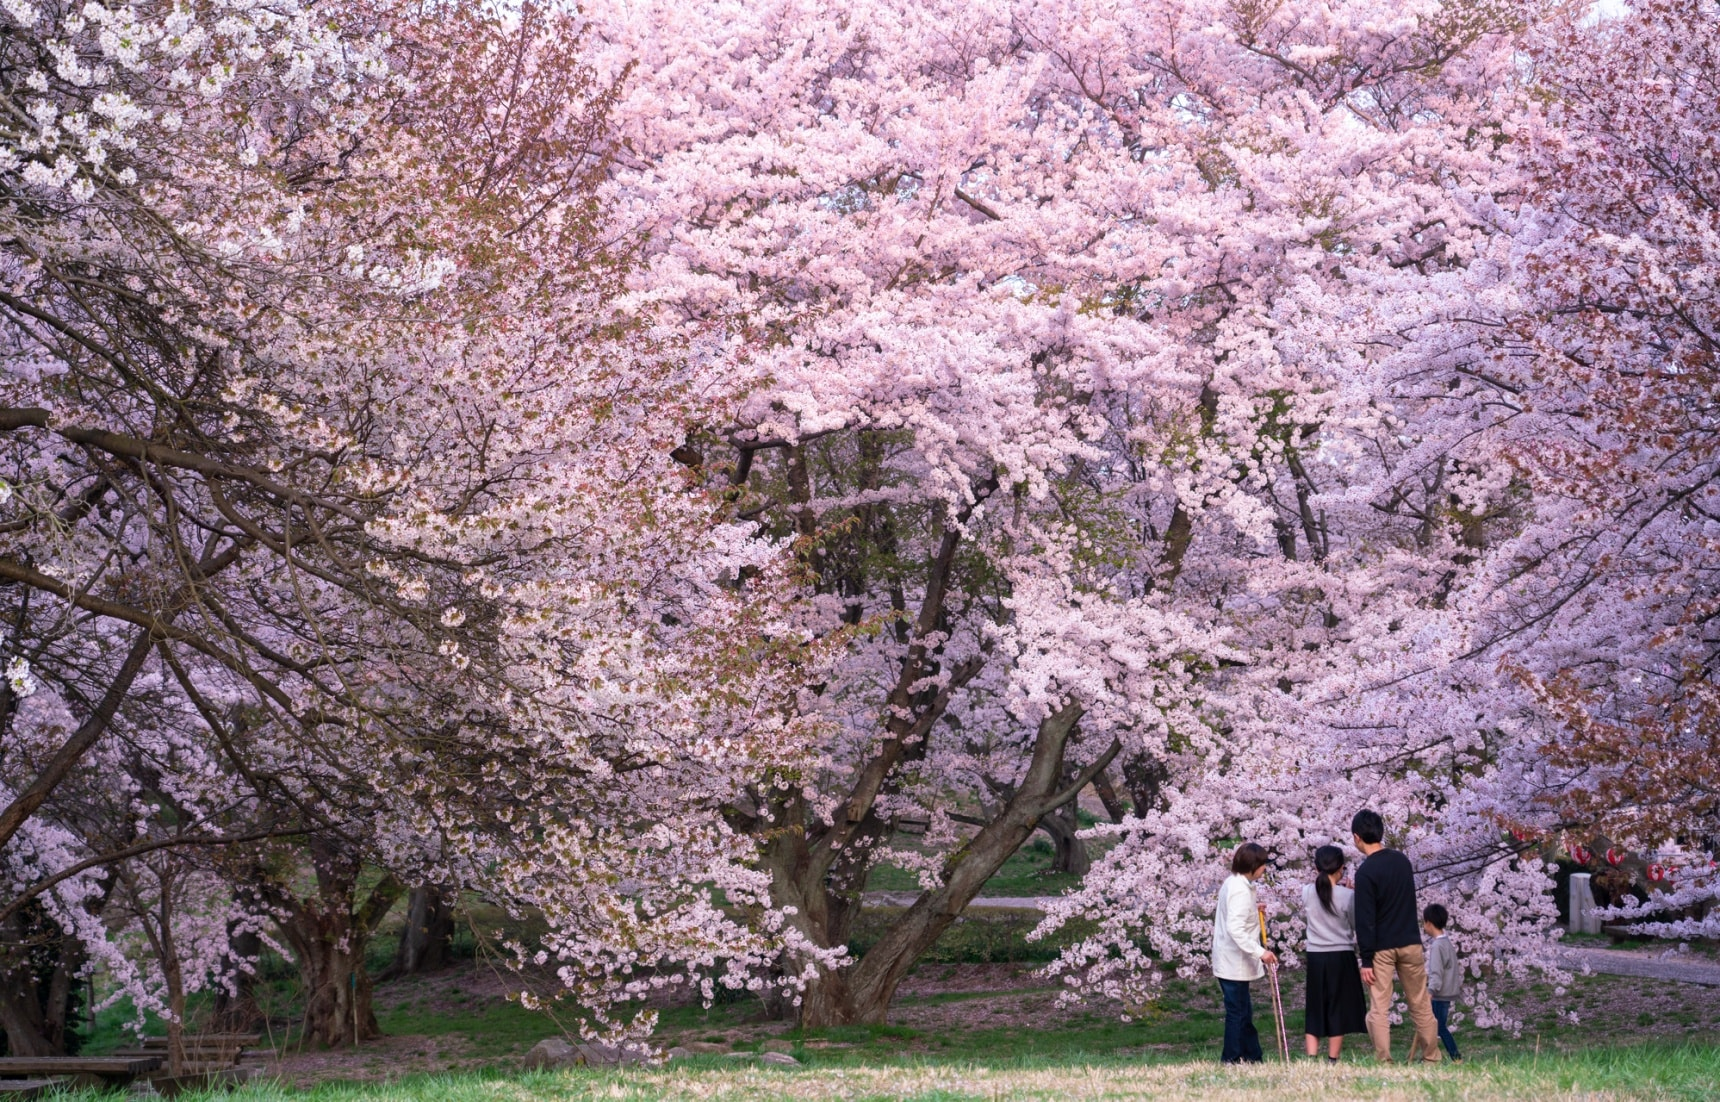 Incredible Cherry Blossoms in Kagawa